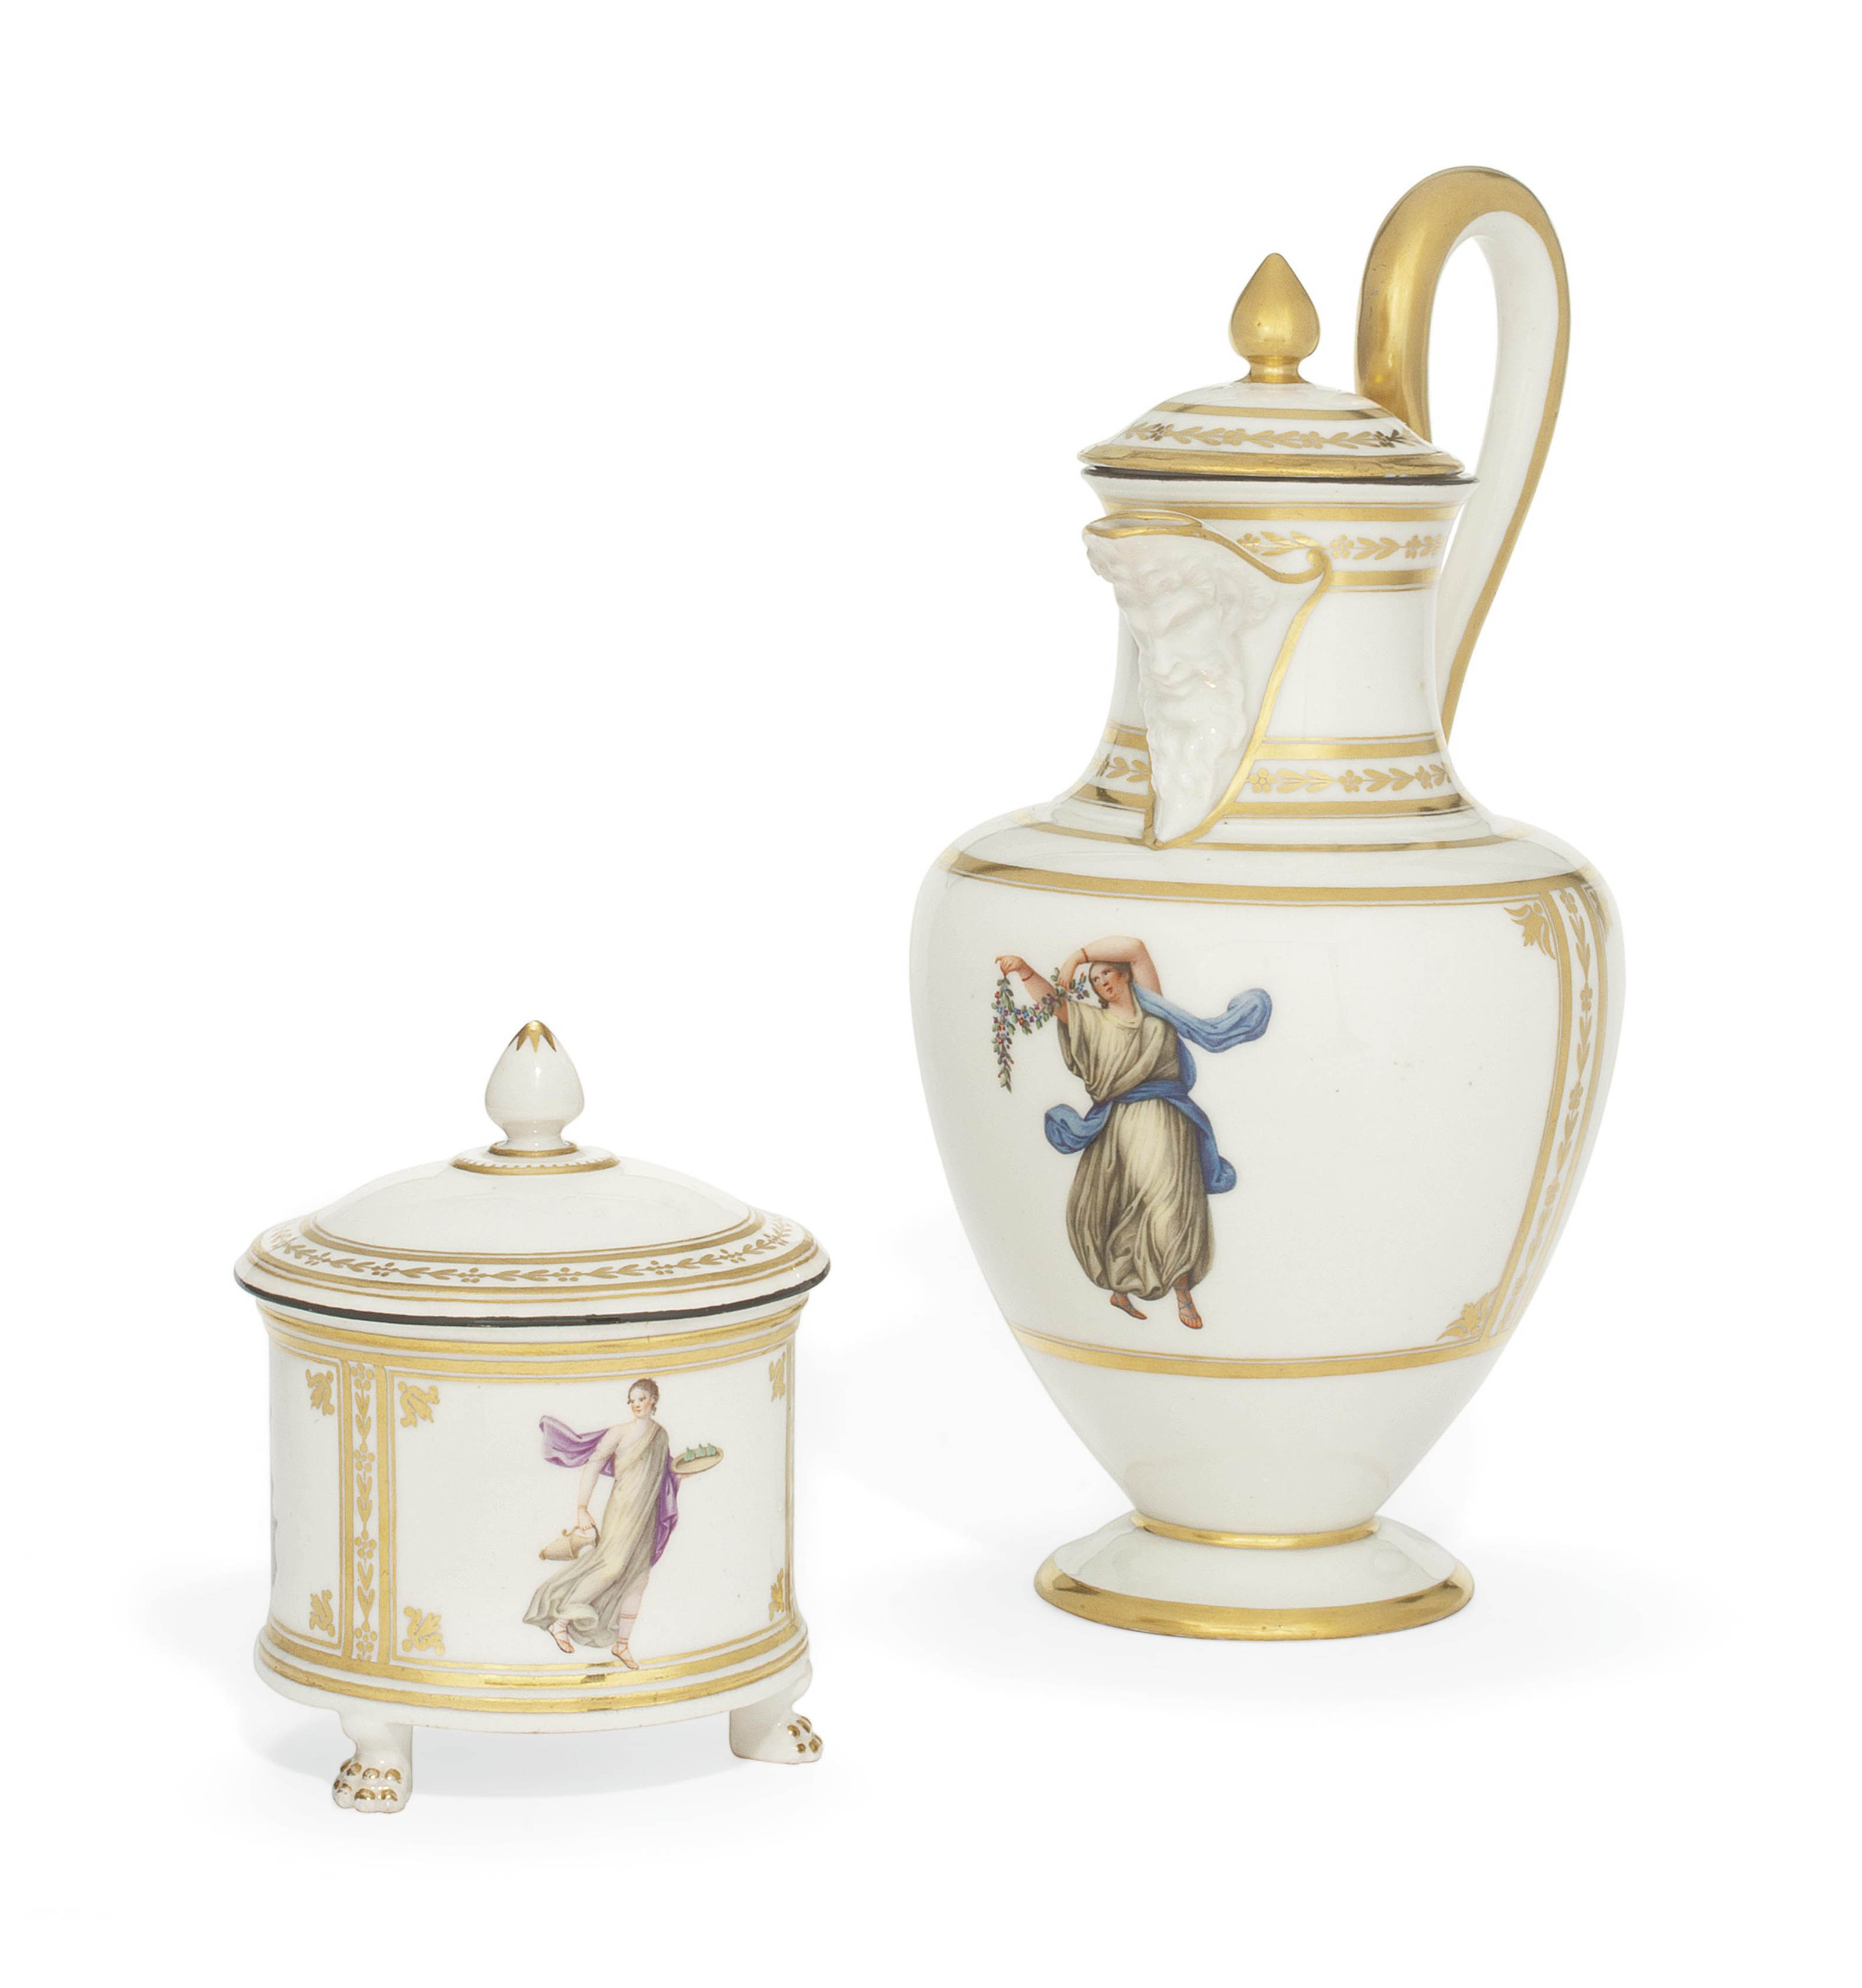 A NAPLES (REAL FABBRICA FERDINANDEA) COFFEE-POT AND A COVER AND SUGAR-BOWL AND COVER